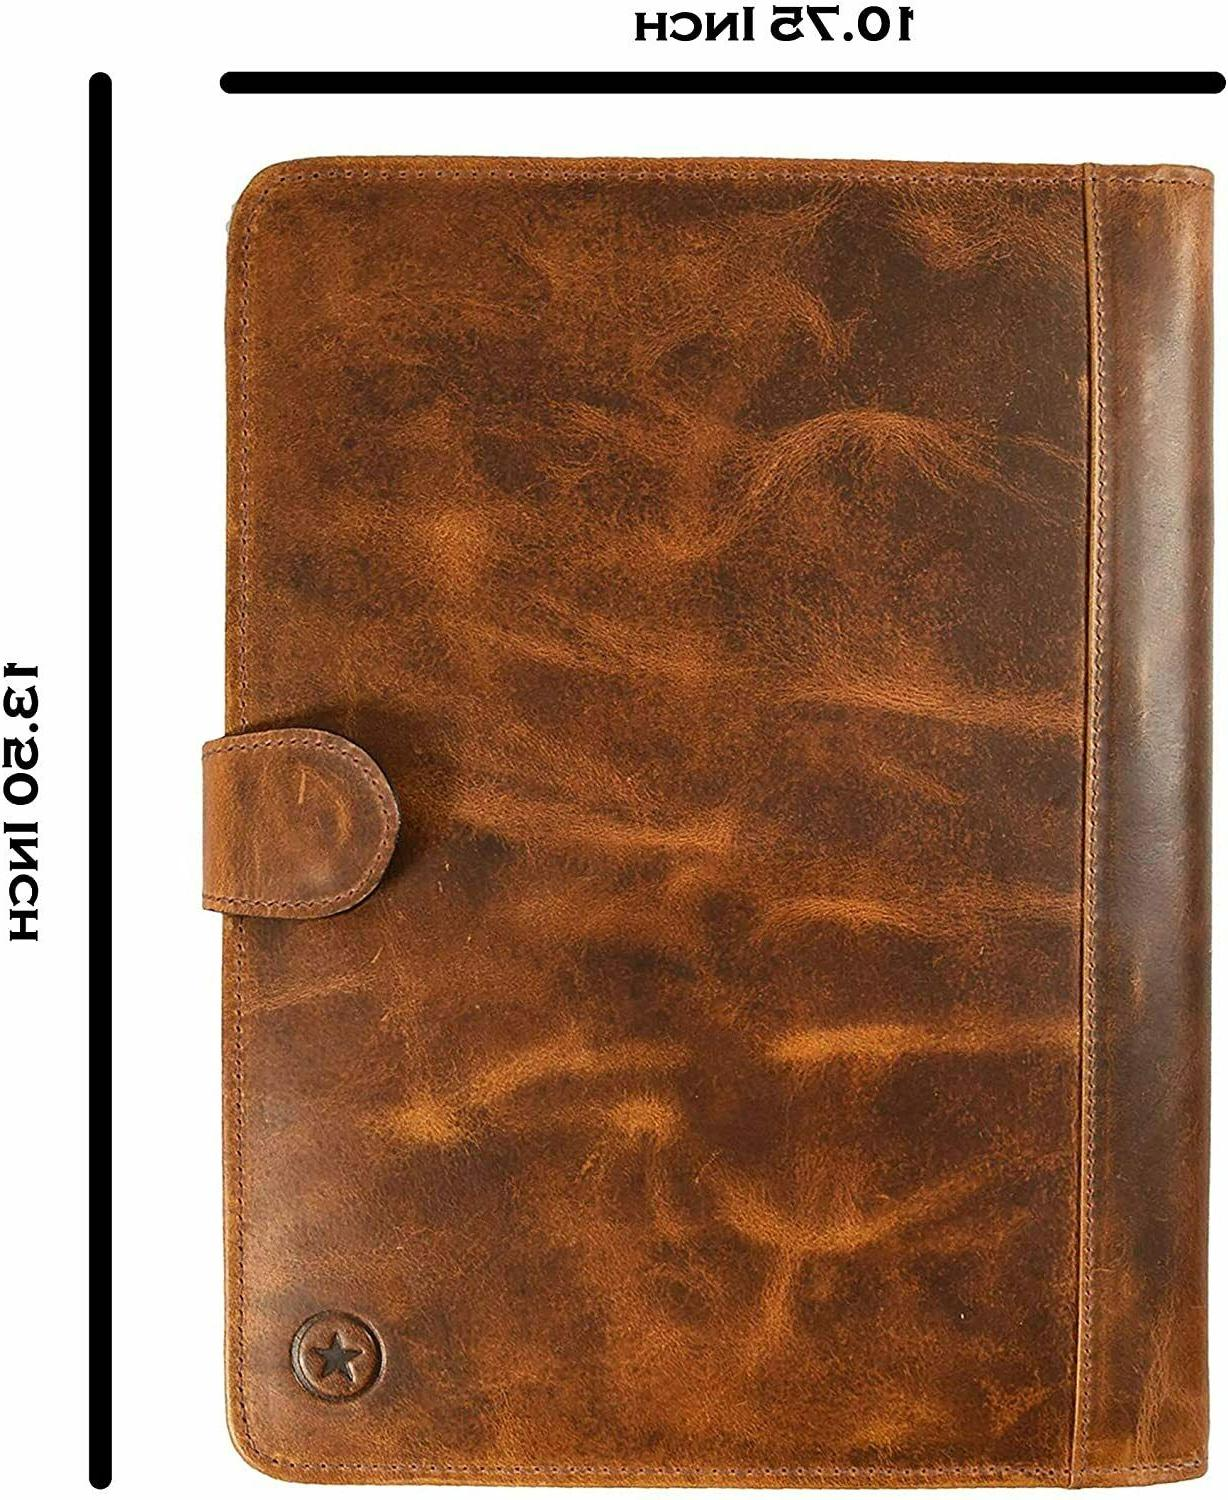 Leather Travel Professional Organizer A424